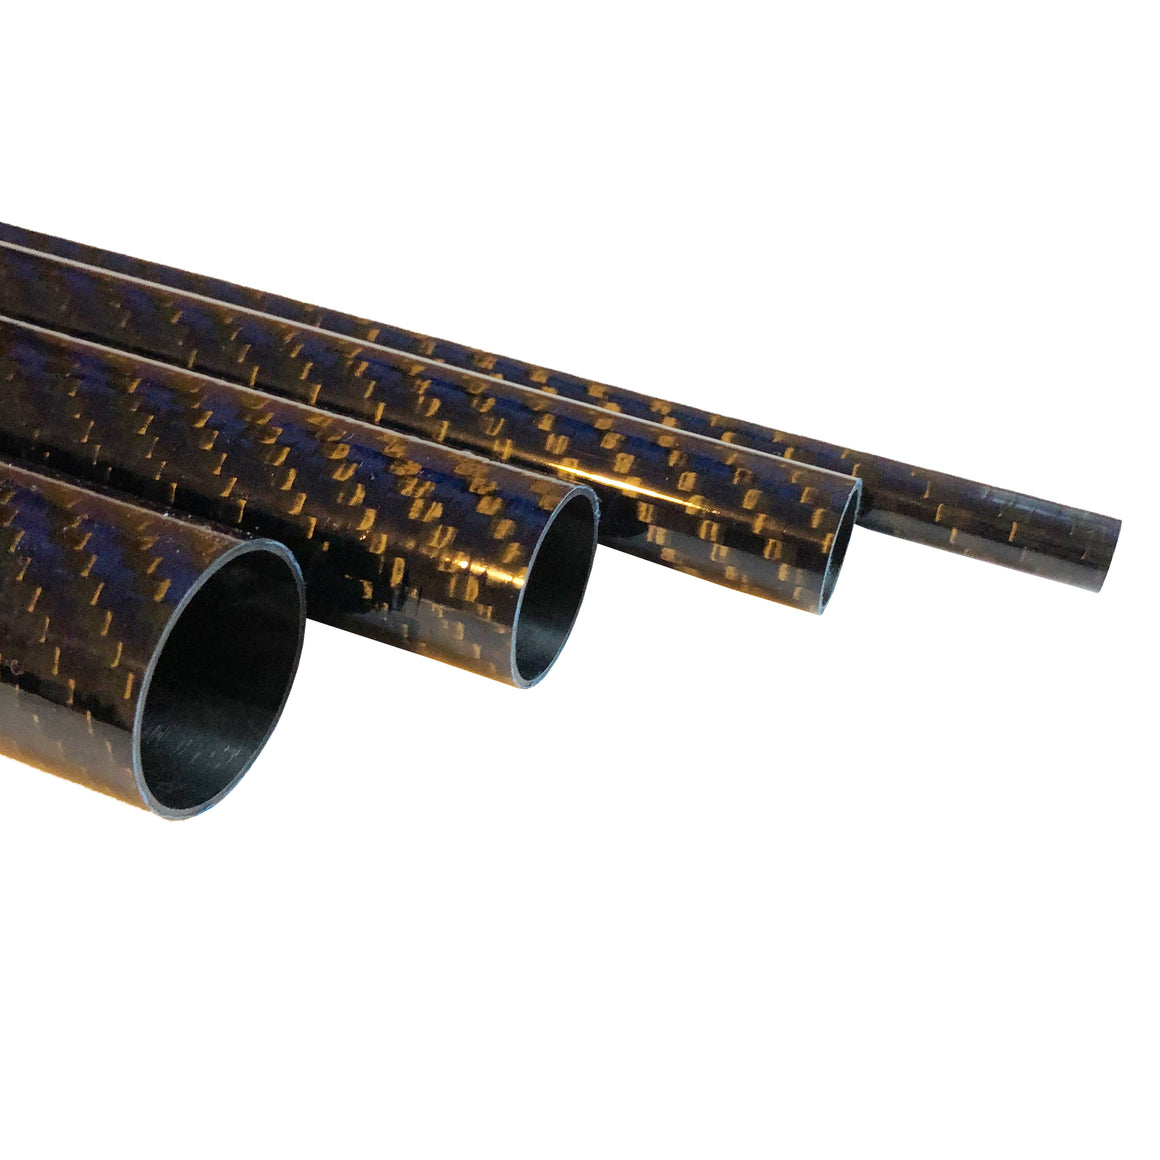 Blue-Black Carbon Fiber Tubing  - 20mm x 18mm x 1000mm - 3K Roll Wrapped - Glossy